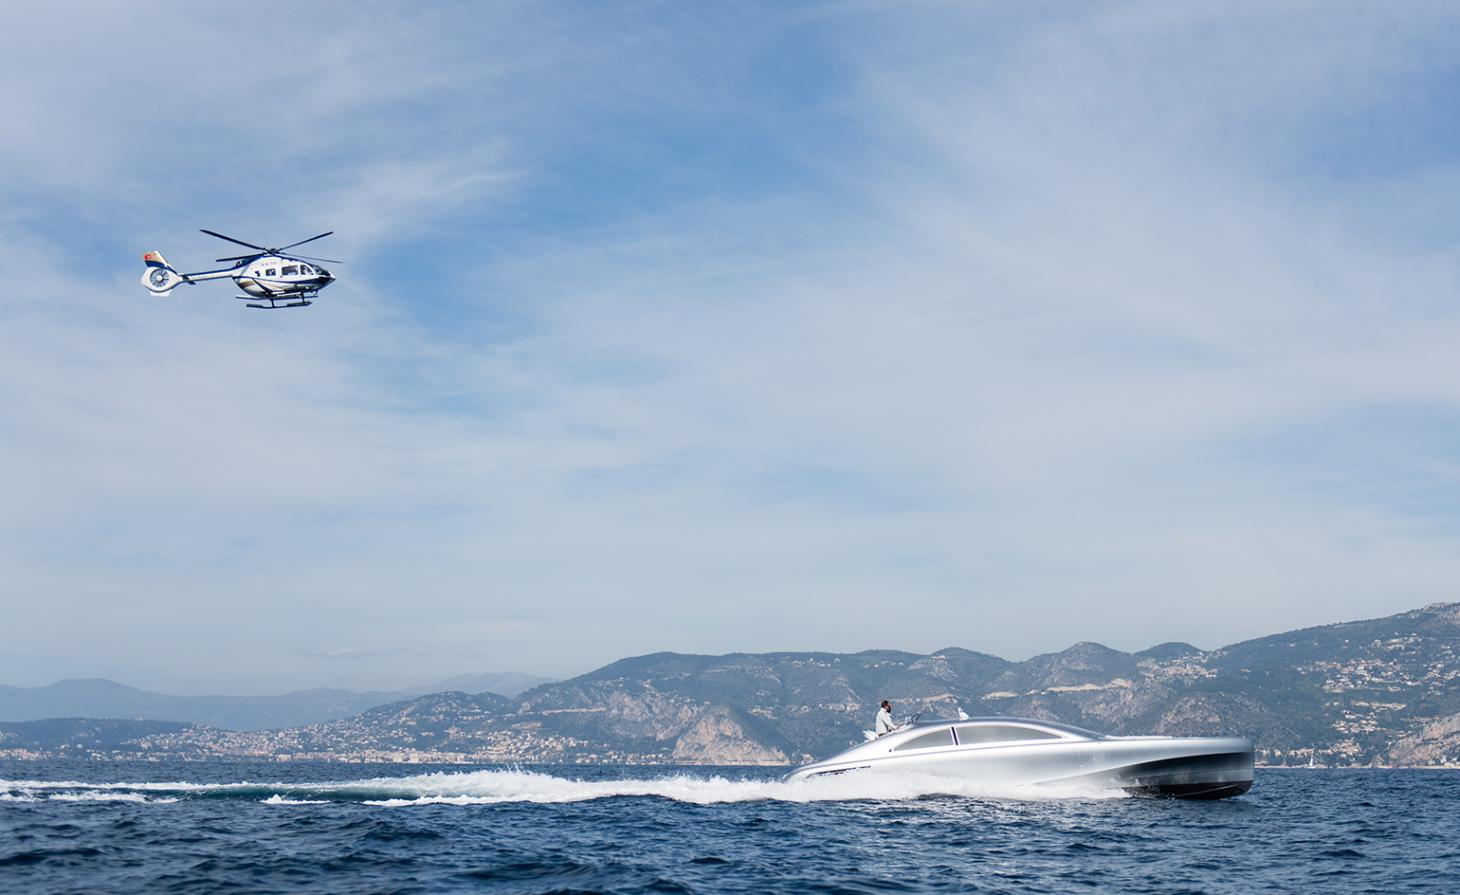 The holy trinity: Mercedes-Benz have conquered land, air and now sea